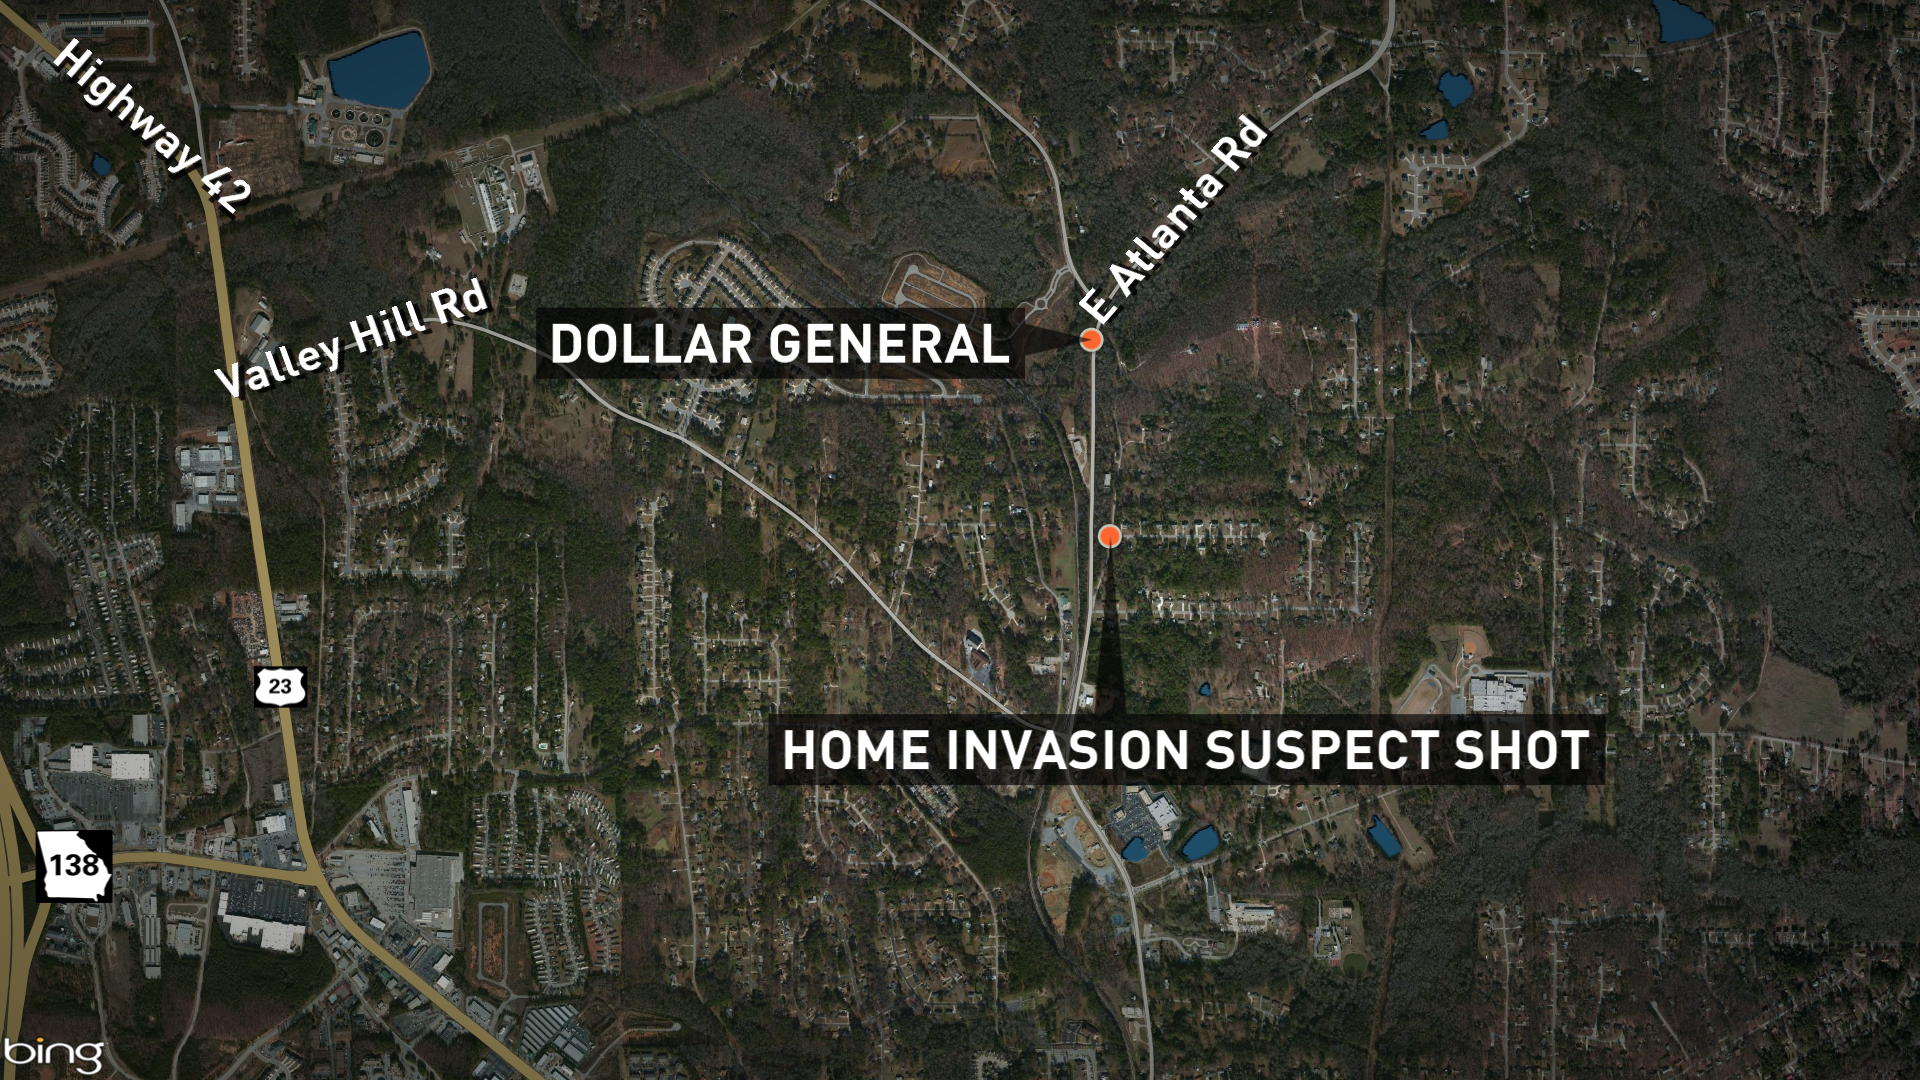 Dc5m United States Financial In English Created At 2017 05 25 1000 424 X 253 Png 19kb Open Circuit And Short Test On Transformer Stockbridge Ga A Man Who Police Believe Robbed Dollar General Store Was Shot Killed After He Allegedly Broke Into Home While Fleeing From